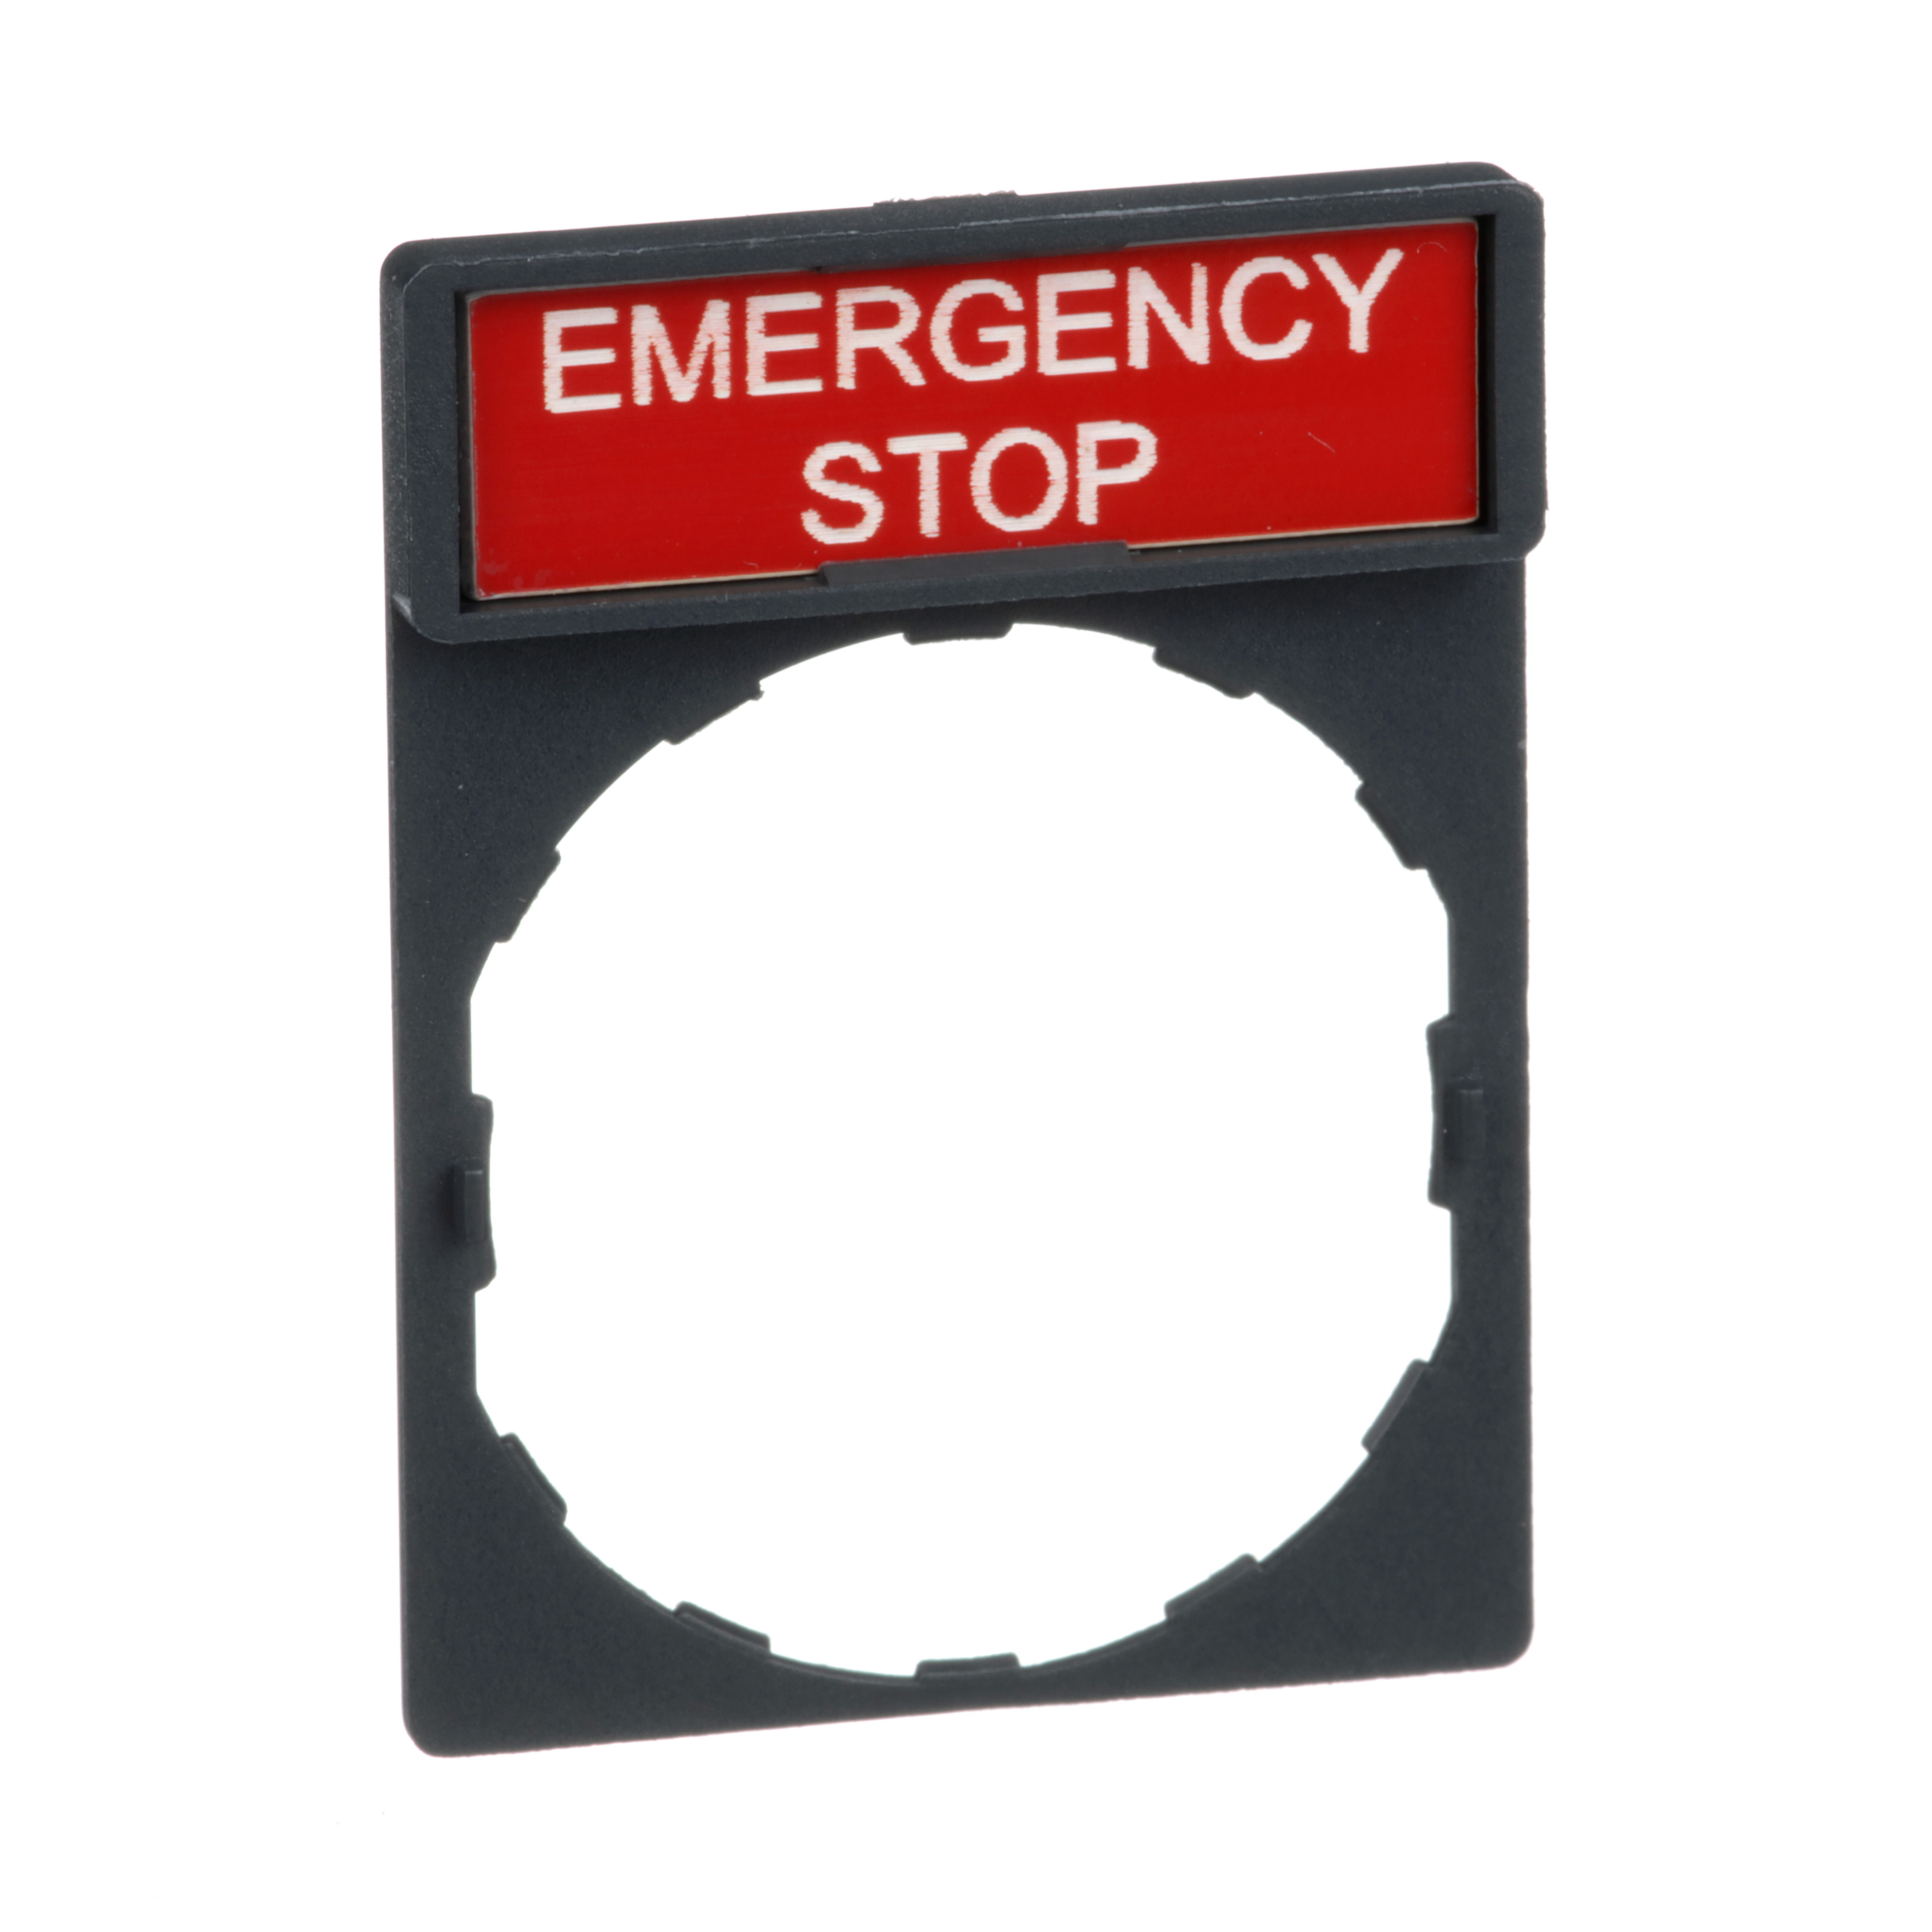 SQUARE D Harmony, 22mm Push Button, legend holder 30 x 40 mm, with legend 8 x 27 mm, marked EMERGENCY STOP